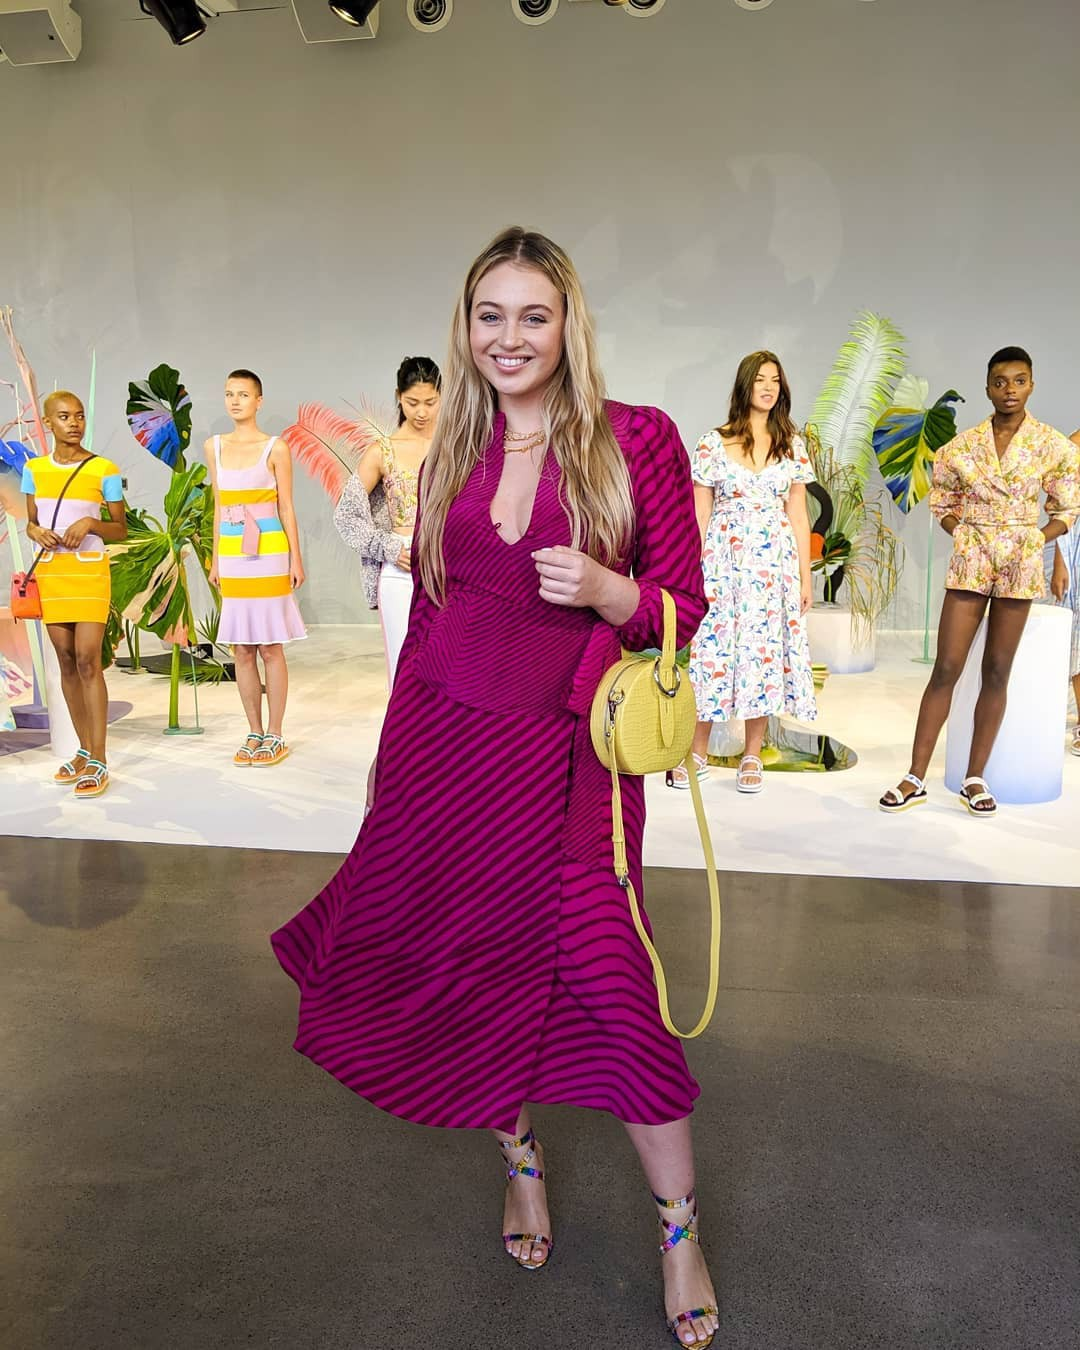 Iskra Lawrence at Fashion show